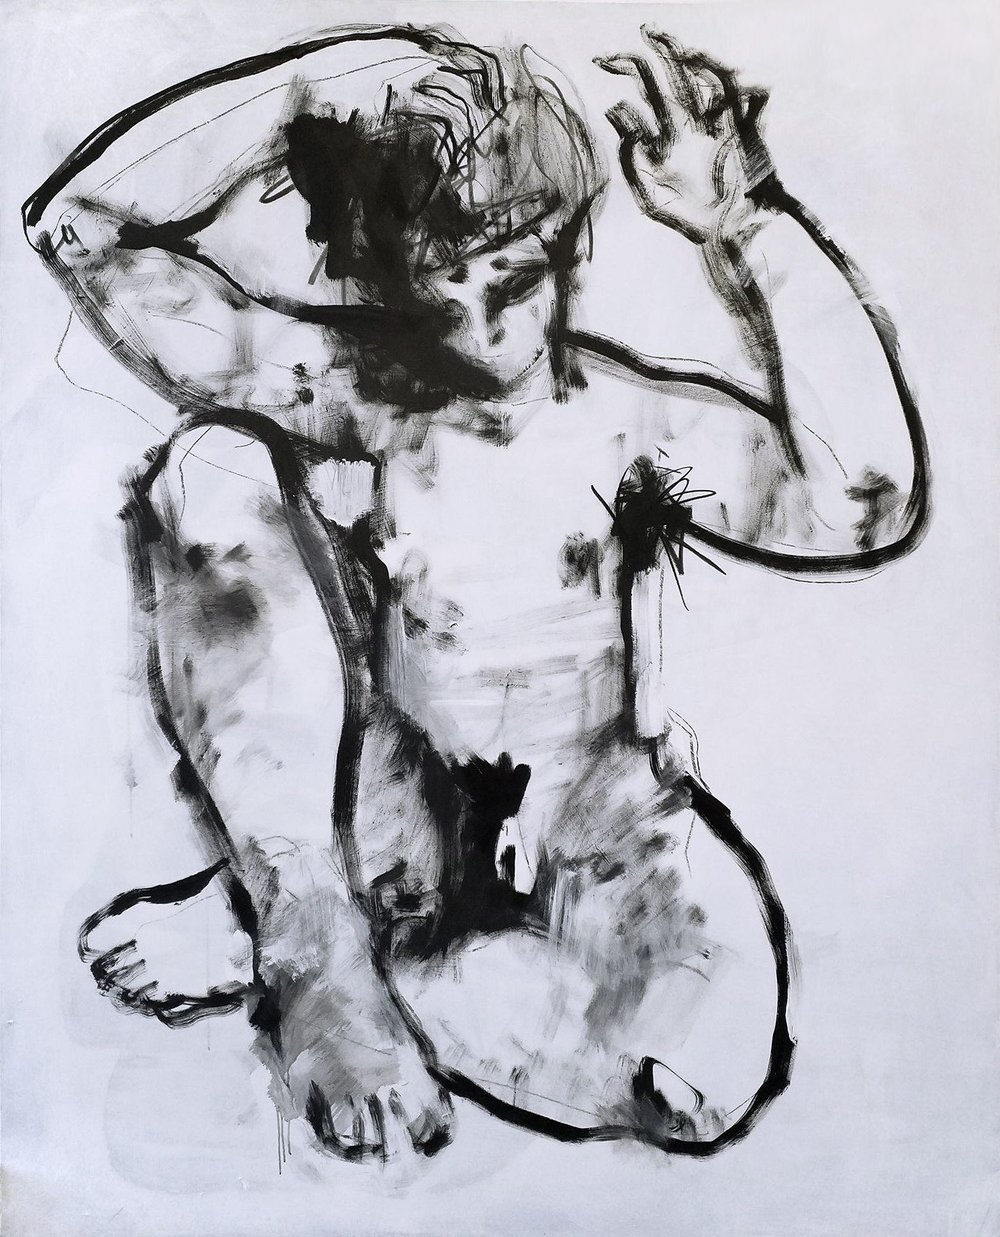 """Untitled,"" 210 x 170 cm, Charcoal & Acrylic on Canvas, 2018"